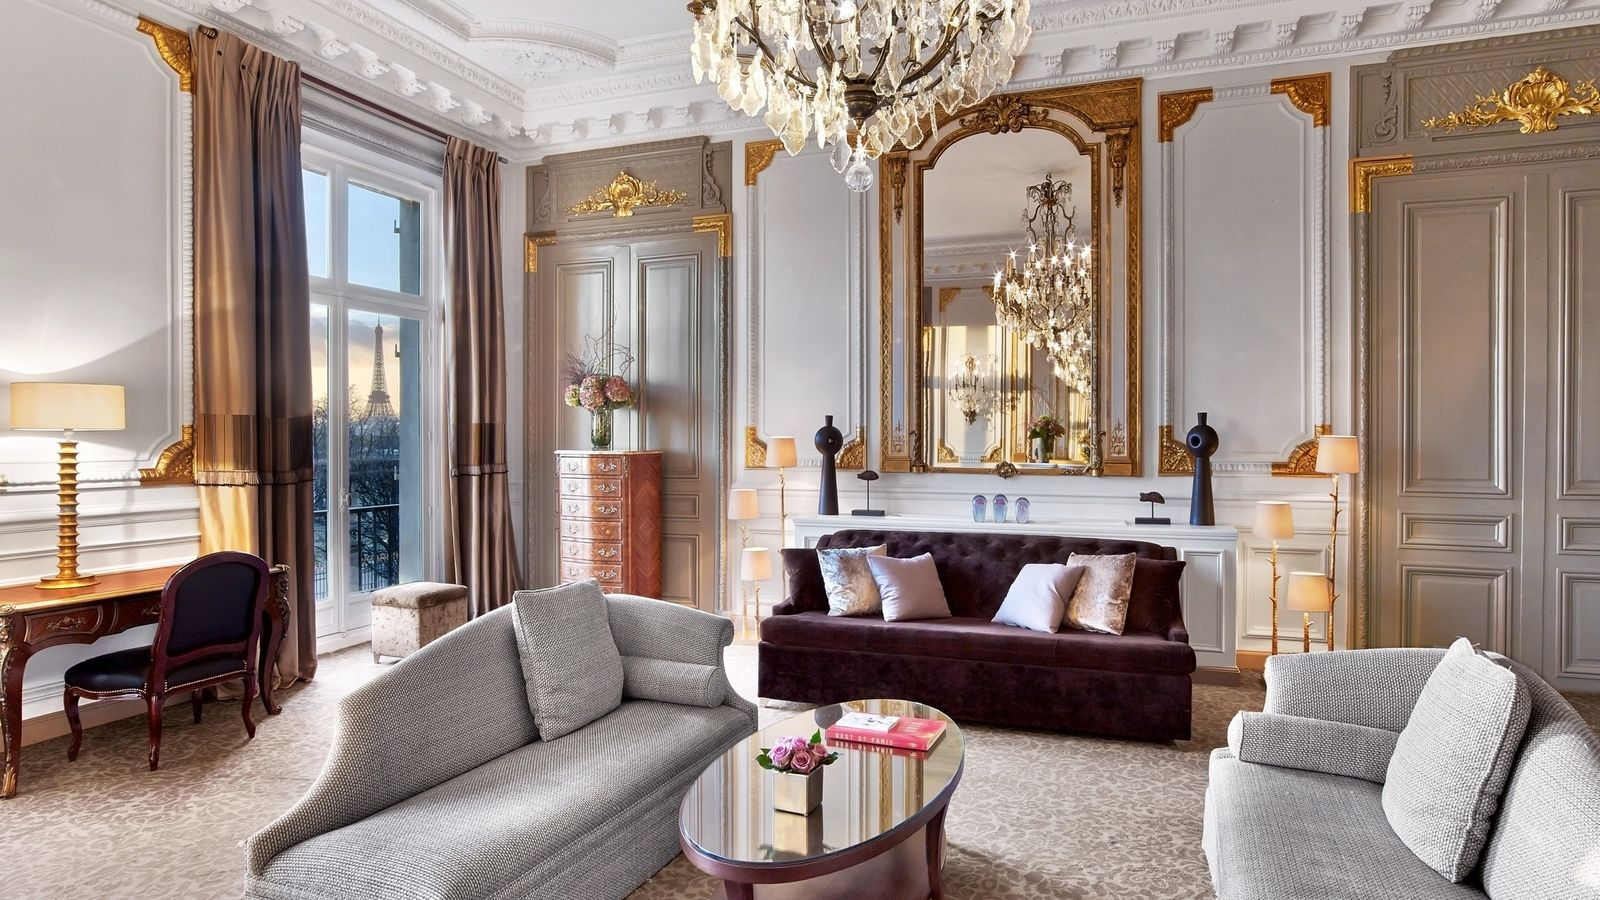 Royal Suite in The Westin Paris - Vendôme